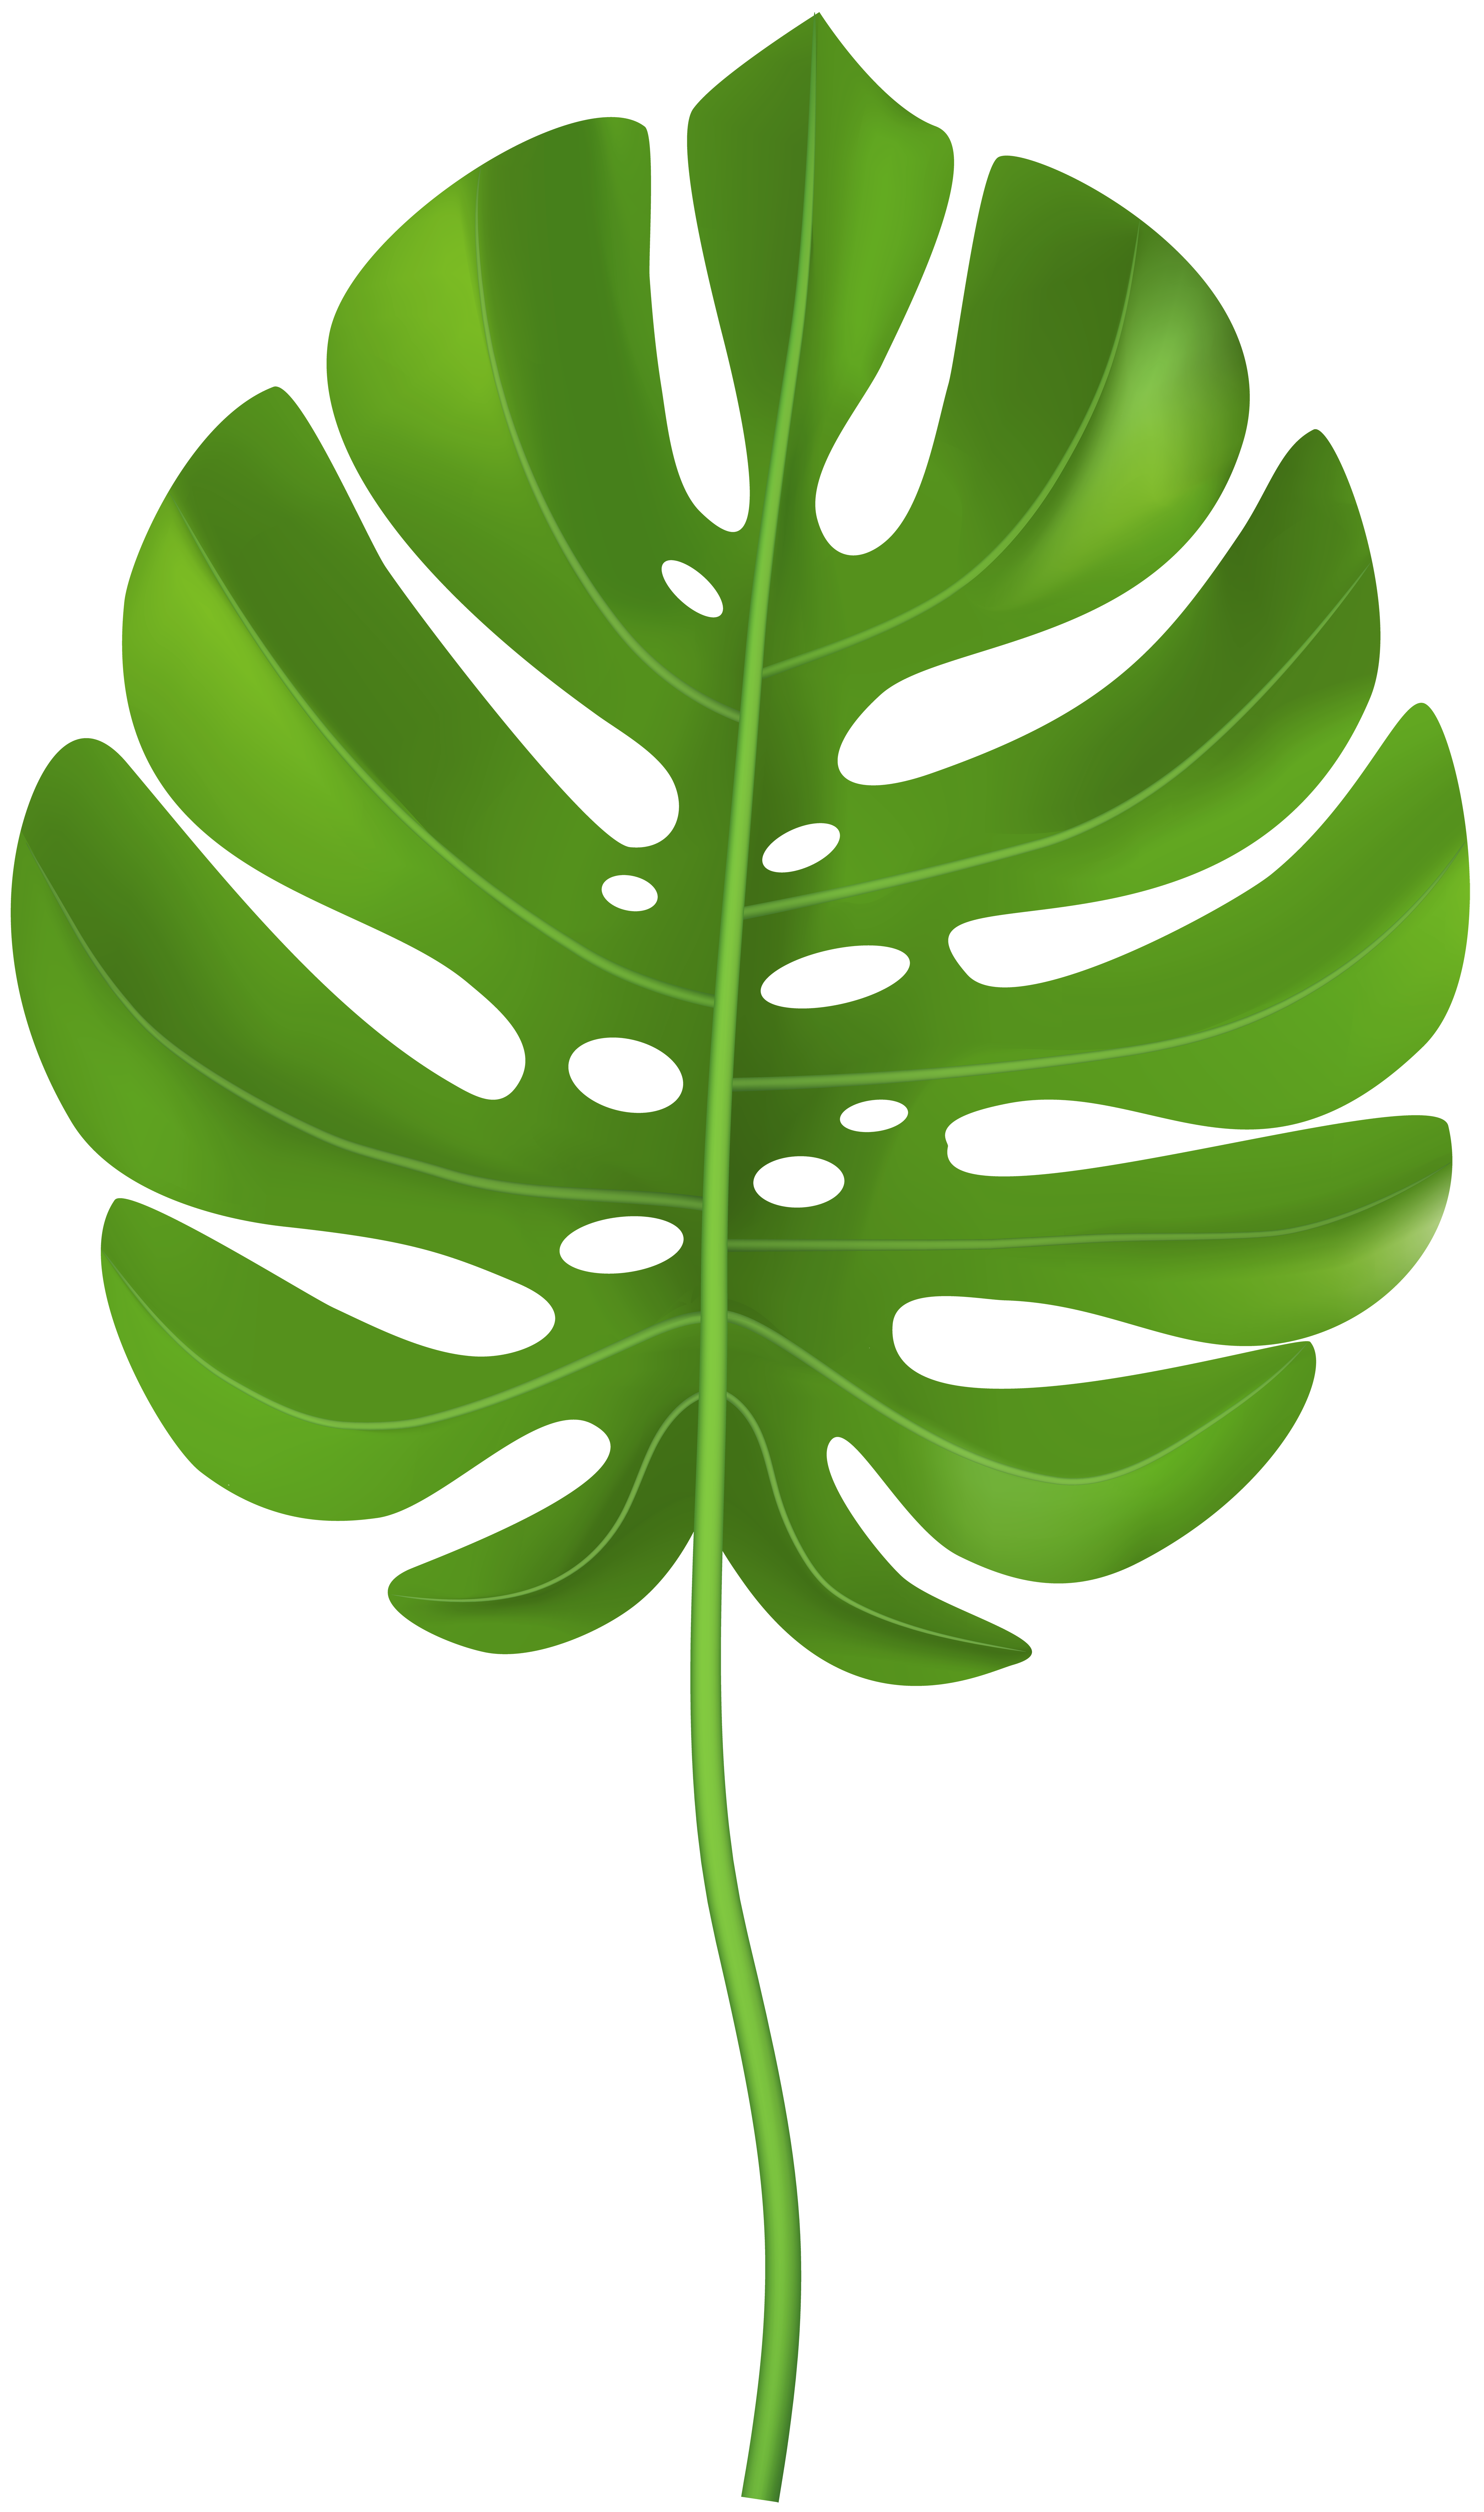 Tropical Palm Leaf Transparent Png Clip Art Image Gallery Yopriceville High Quality Images And Transparent Png Free Leaf Clipart Leaf Art Tropical Leaves Herbs illustration pattern illustration botanical illustration illustration vector leaf outline leaf drawing fruit pattern tropical pattern tropical what you get: pinterest